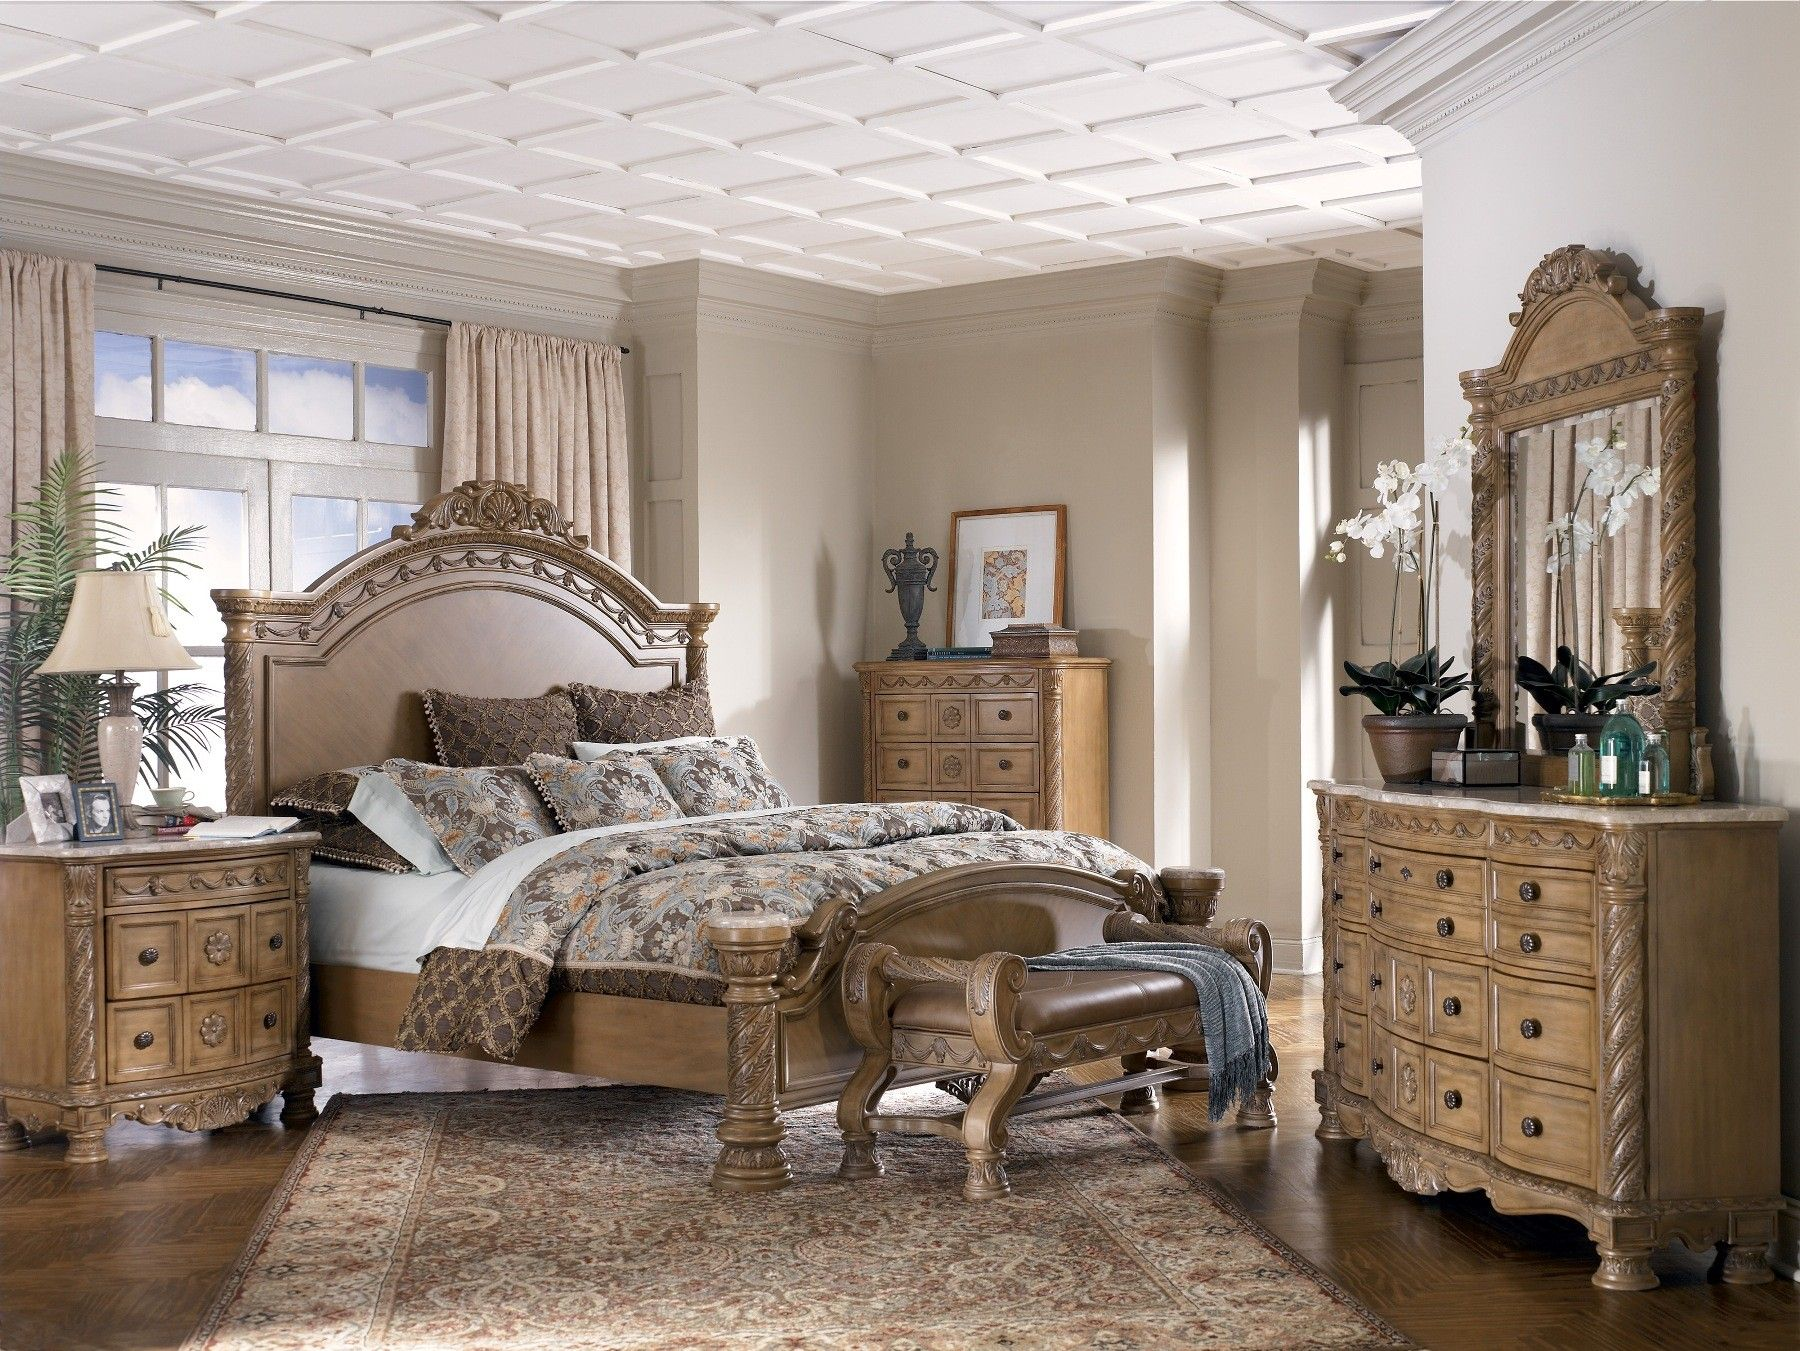 Ashley furniture gallery ashley furniture south coast for Bedroom dresser sets